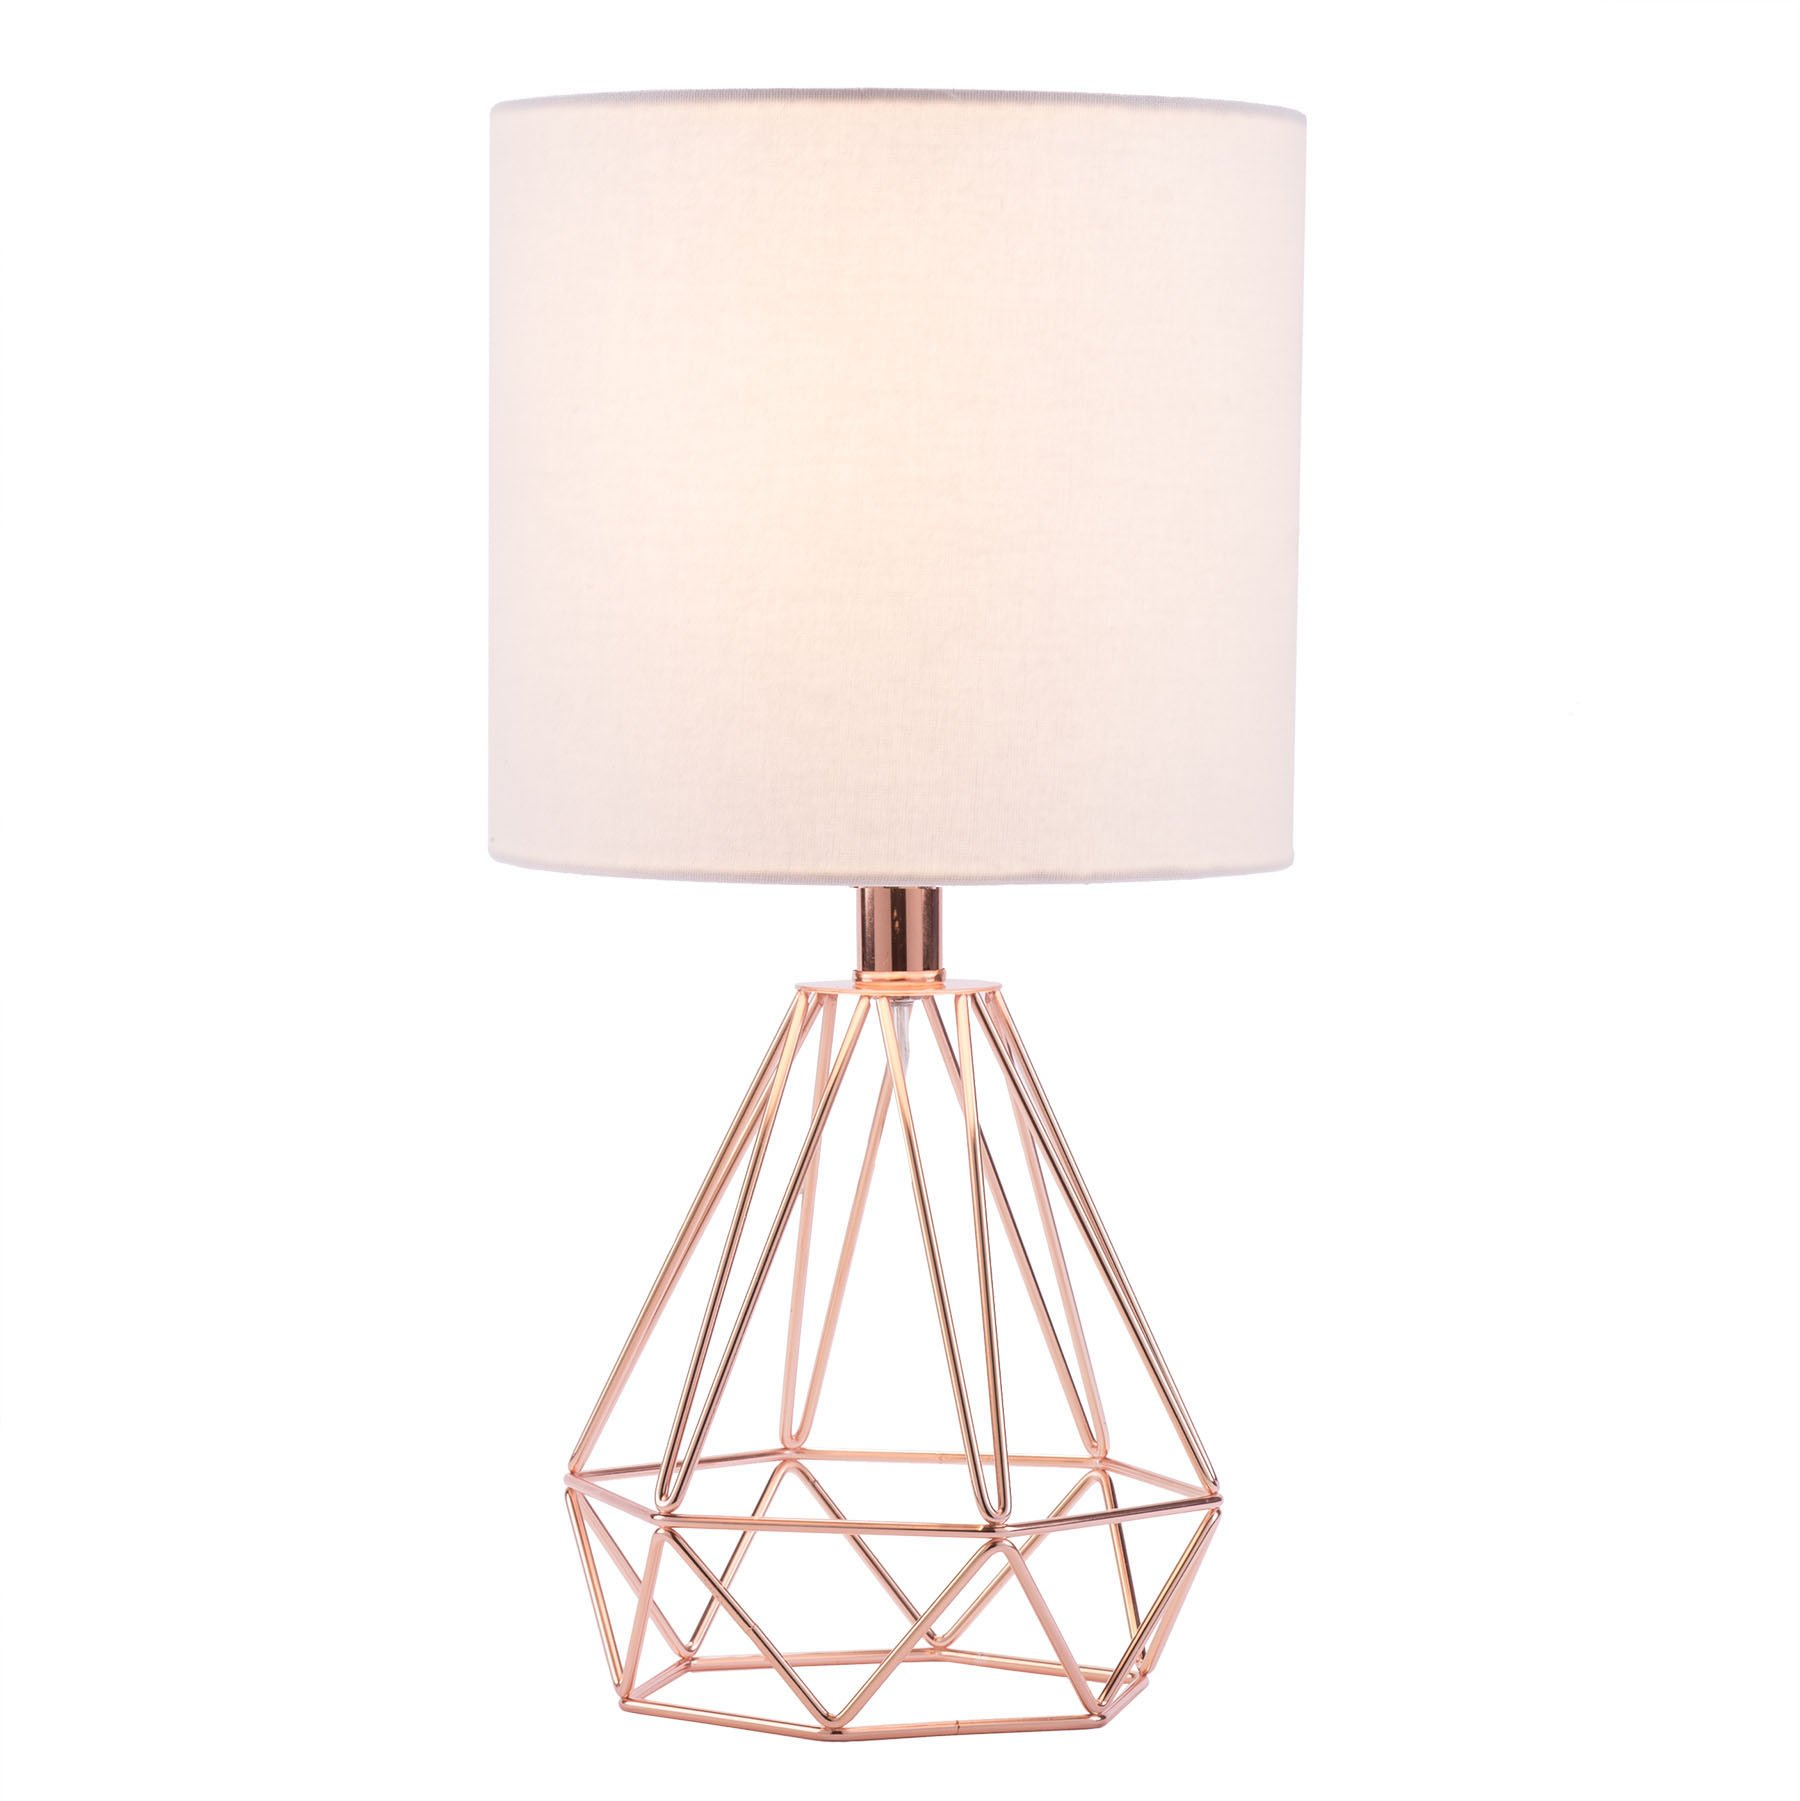 rose gold lamps amazon com rh amazon com  bedroom lamps amazon uk